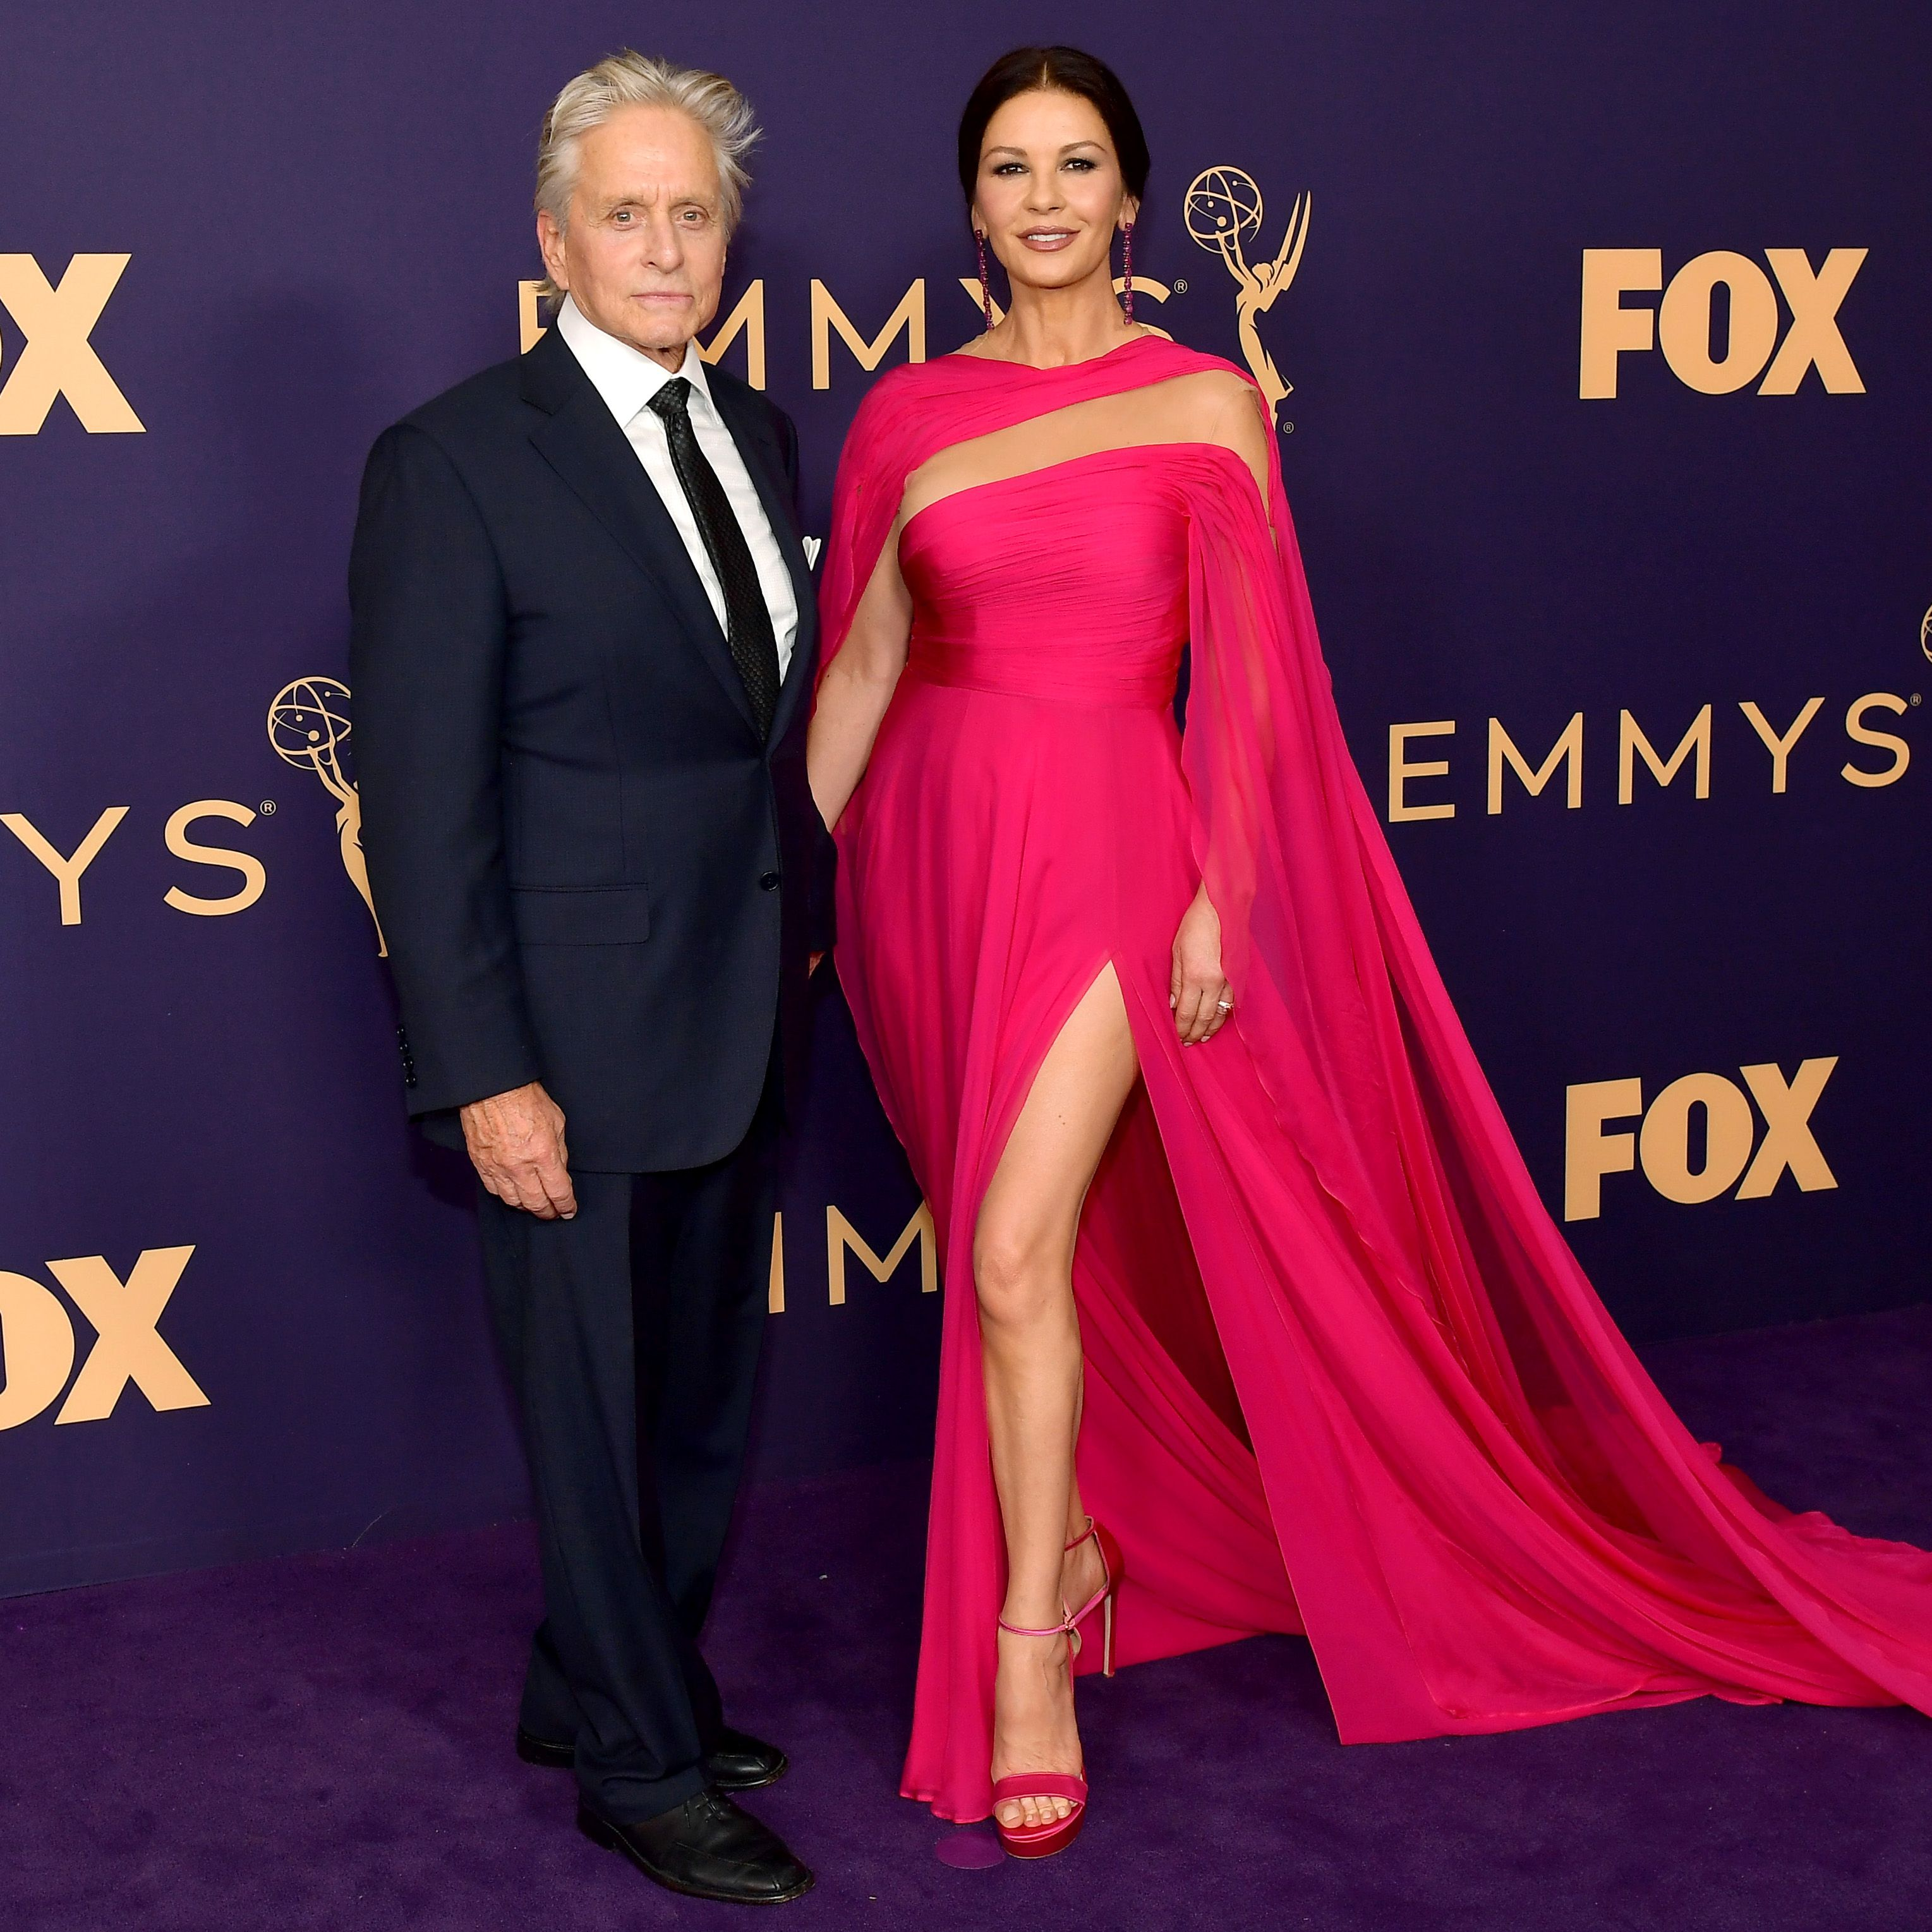 Michael Douglas and Catherine Zeta-Jones at the 71st Emmy Awards on September 22, 2019 | Photo: Getty Images